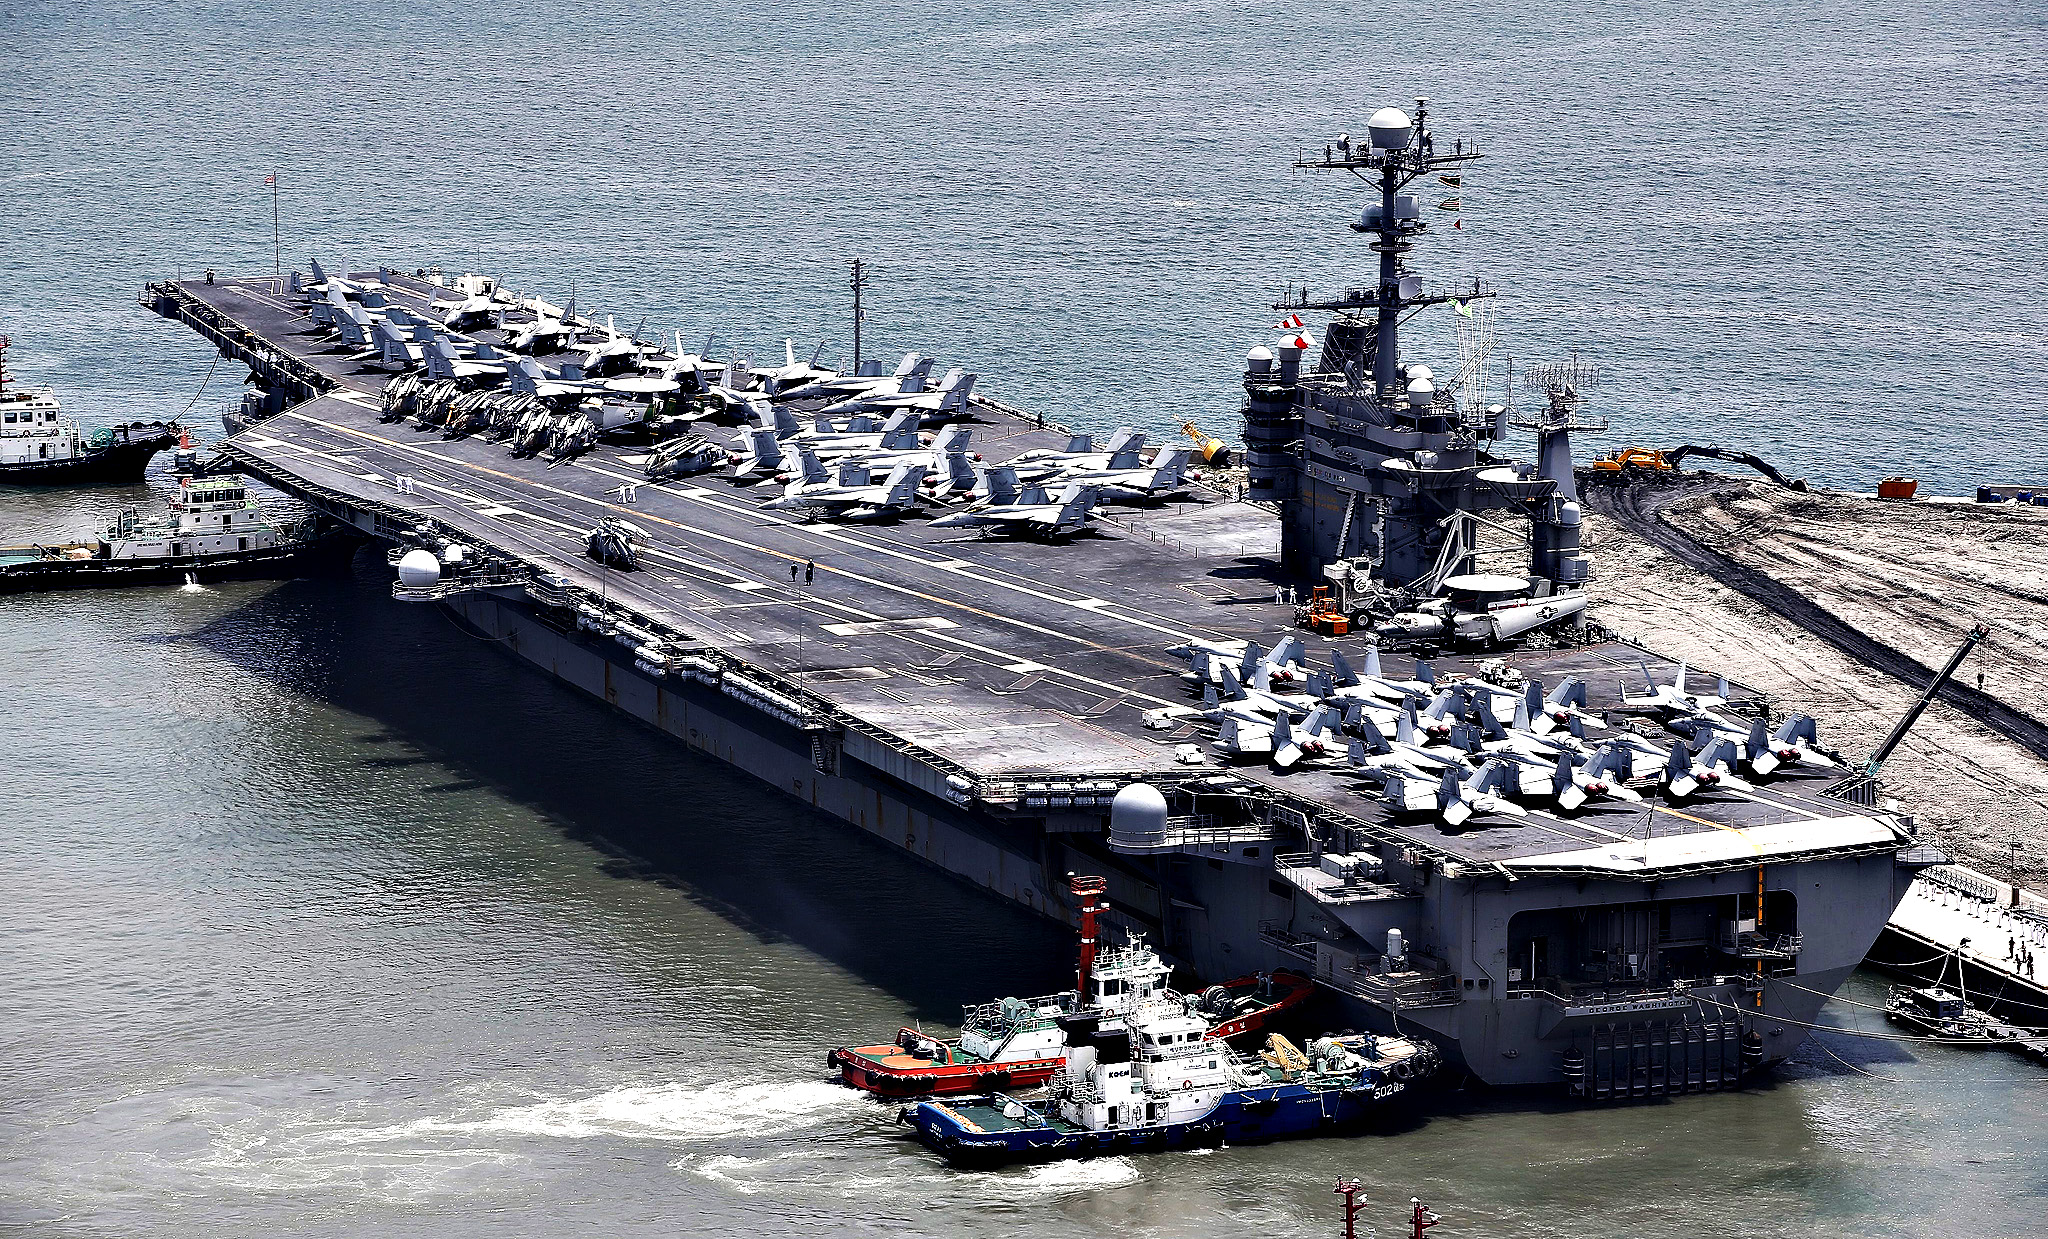 A view of the USS George Washington aircraft carrier (CVN-73) in Busan, South Korea, 11 July 2014. USS George Washington arrived in South Korea on 11 July as part of a planned visit.